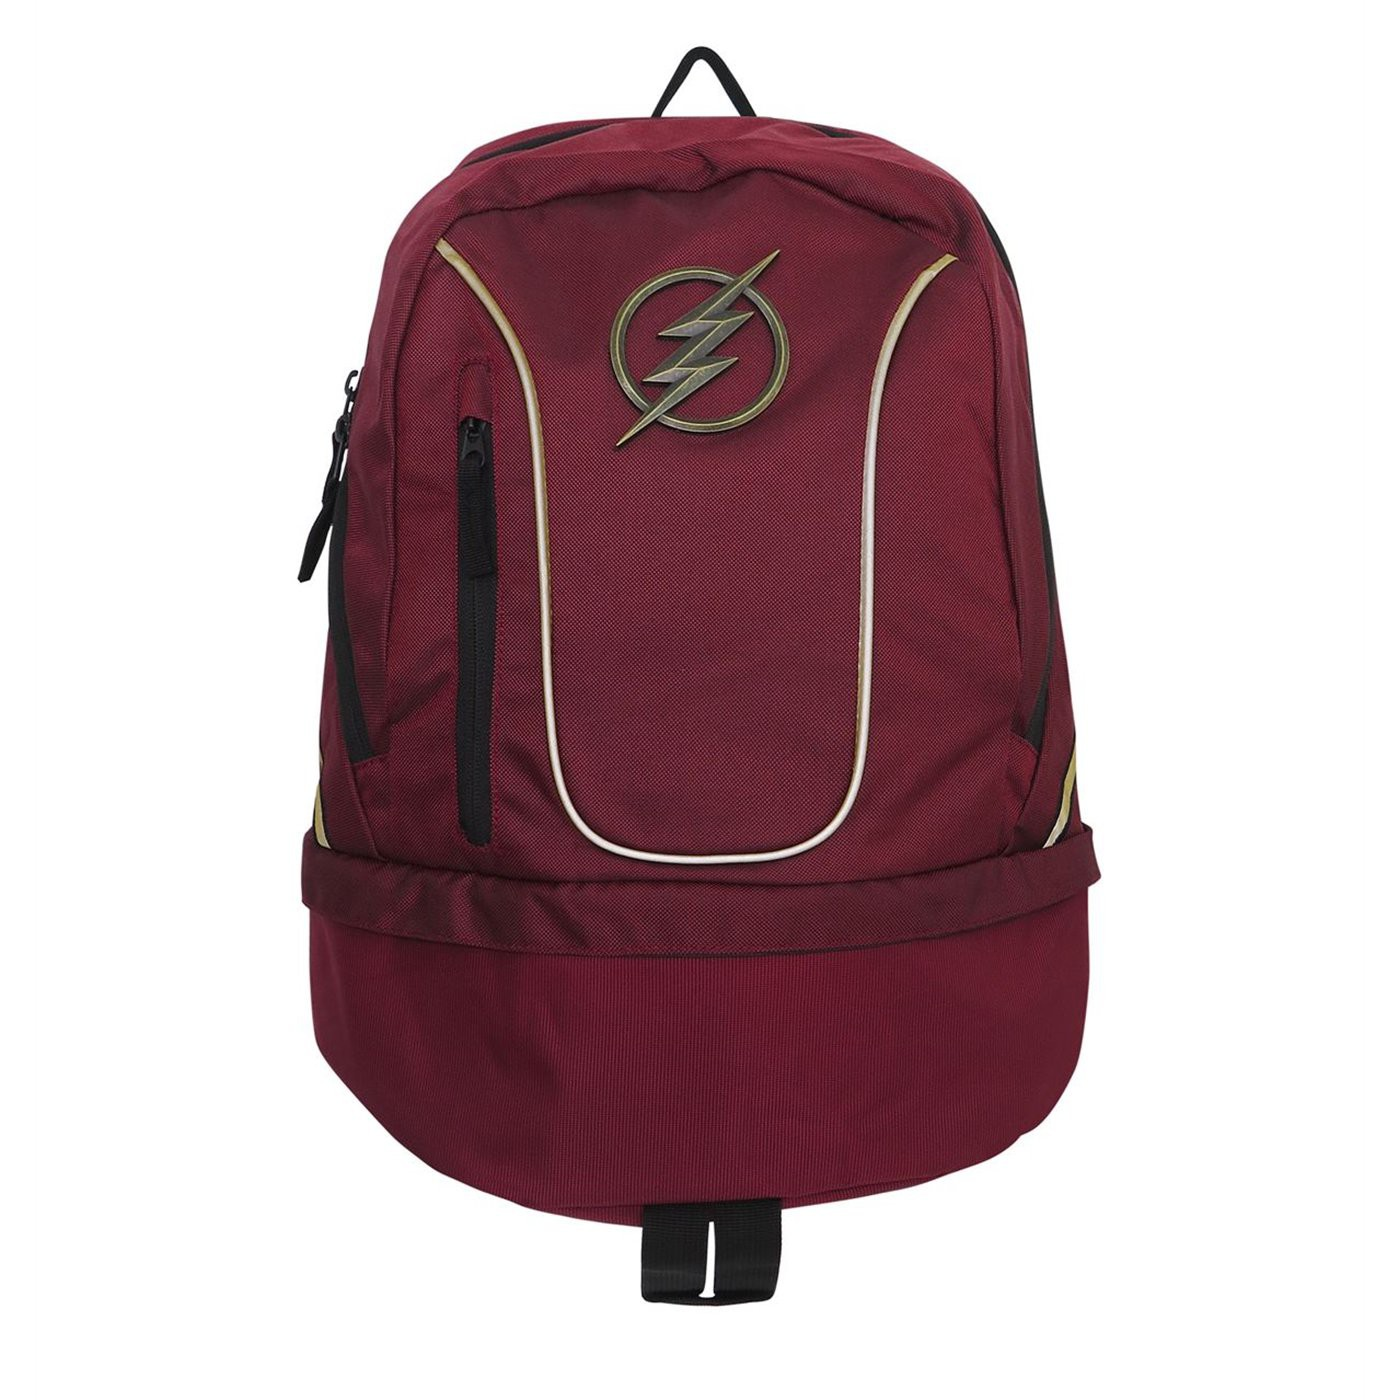 Mochila The Flash